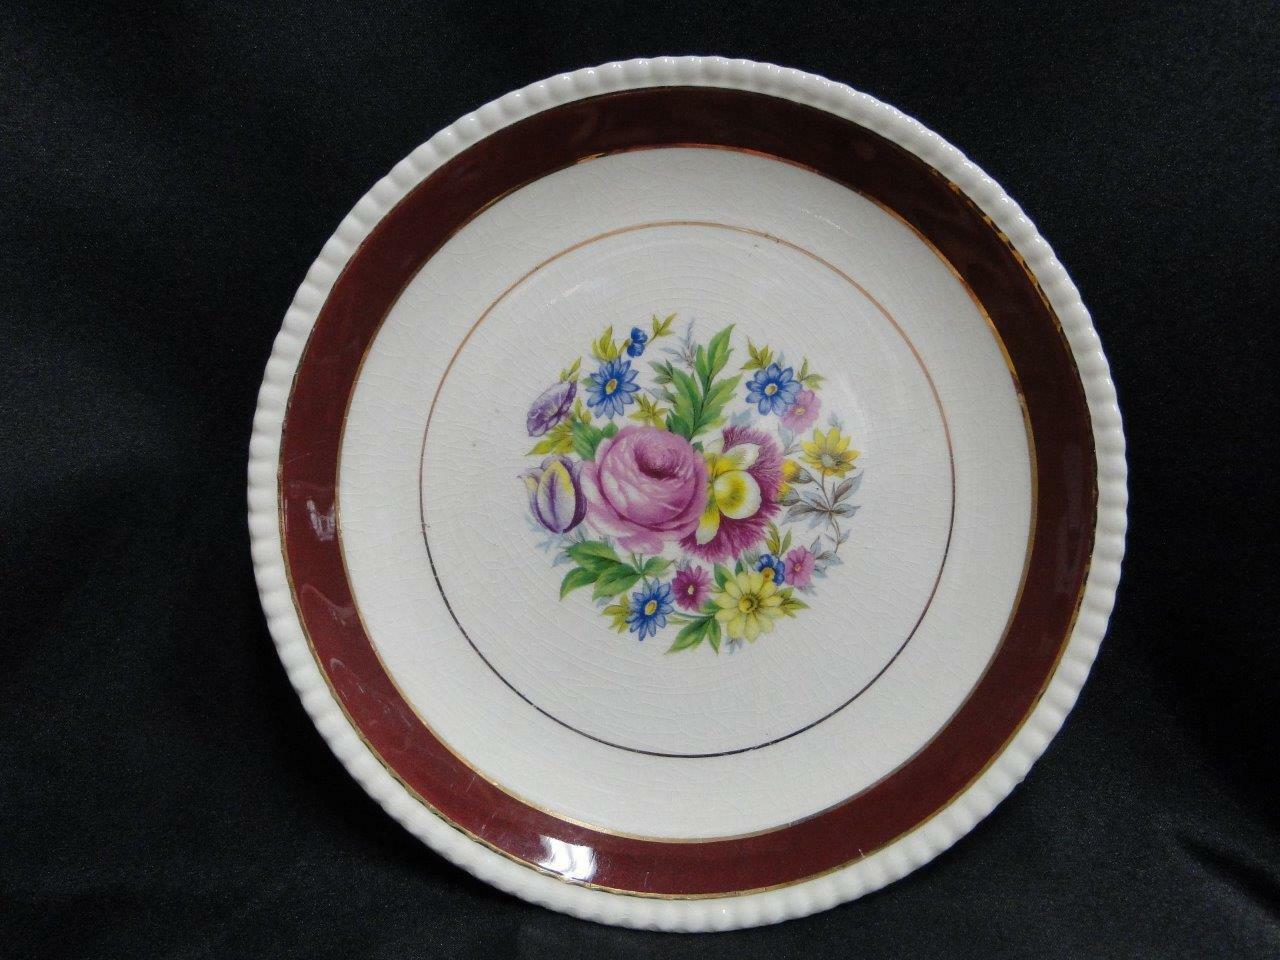 "Fondeville, England, FON1,  Floral Bouquet, Maroon Rim: Plate (s) 8 1/8"" AS IS"